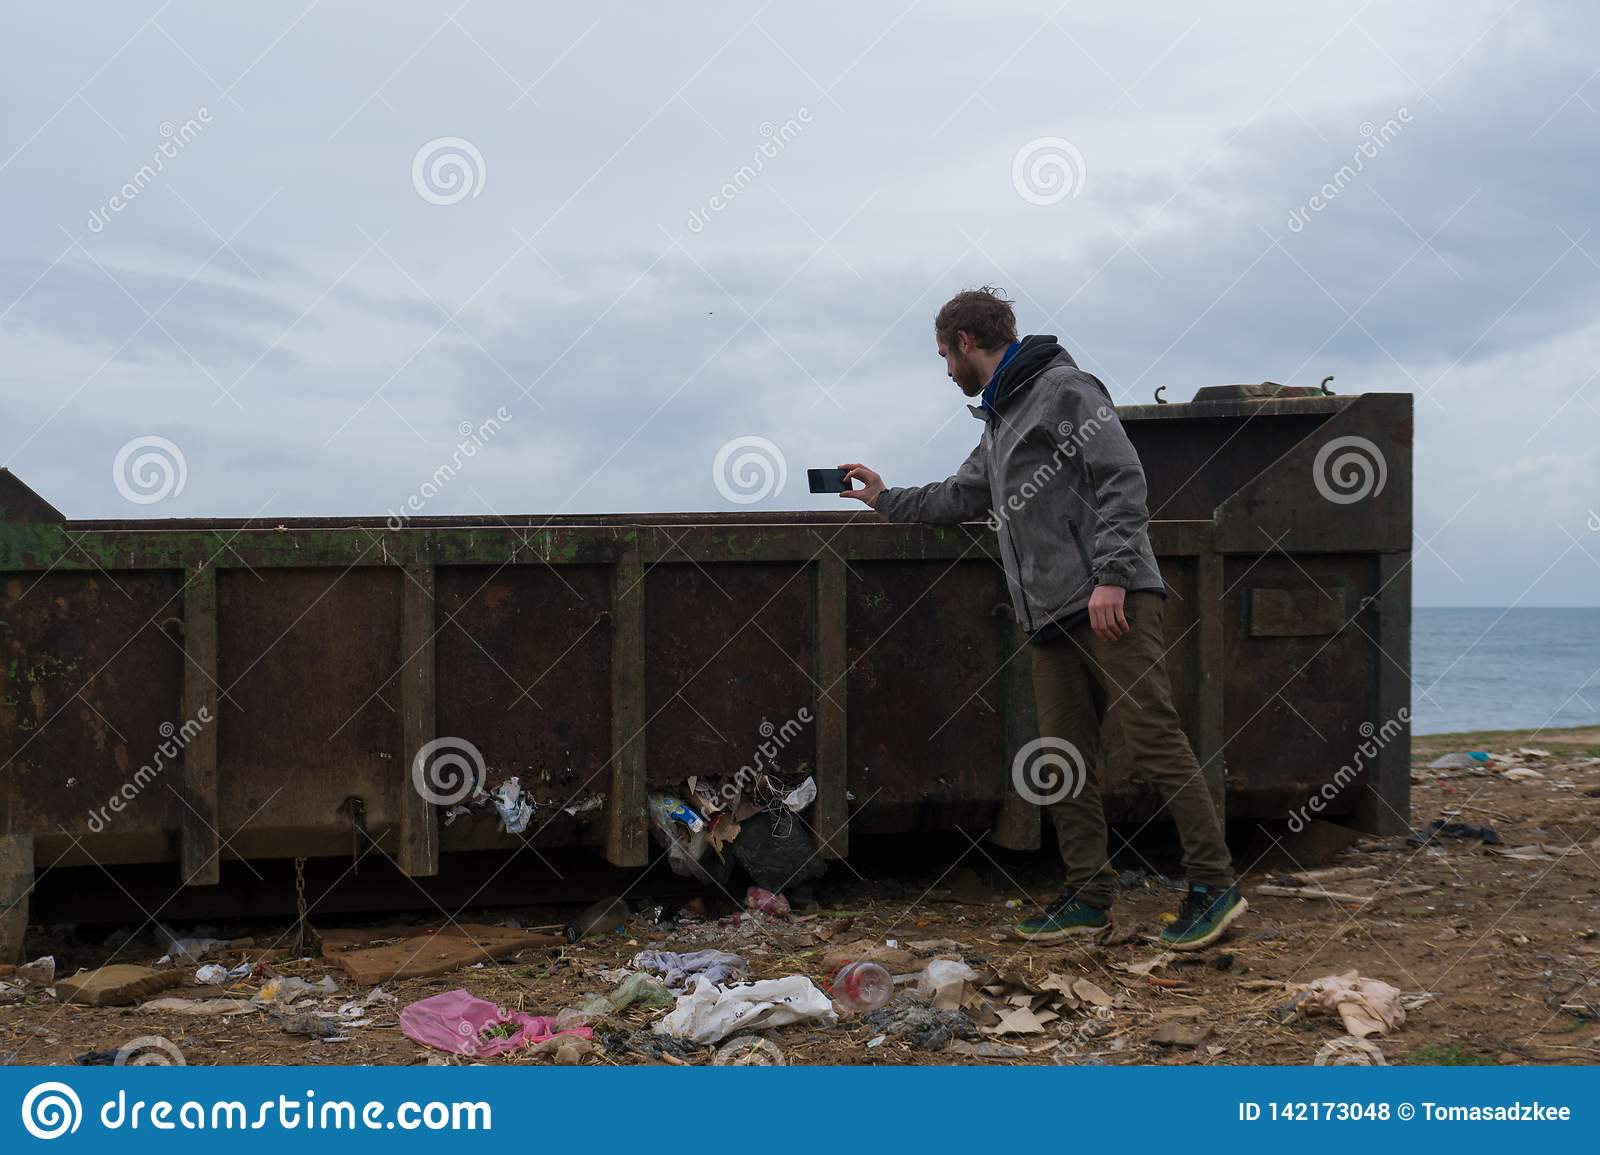 Young Man shooting the garbage Container with Smartphone. Littered Environment